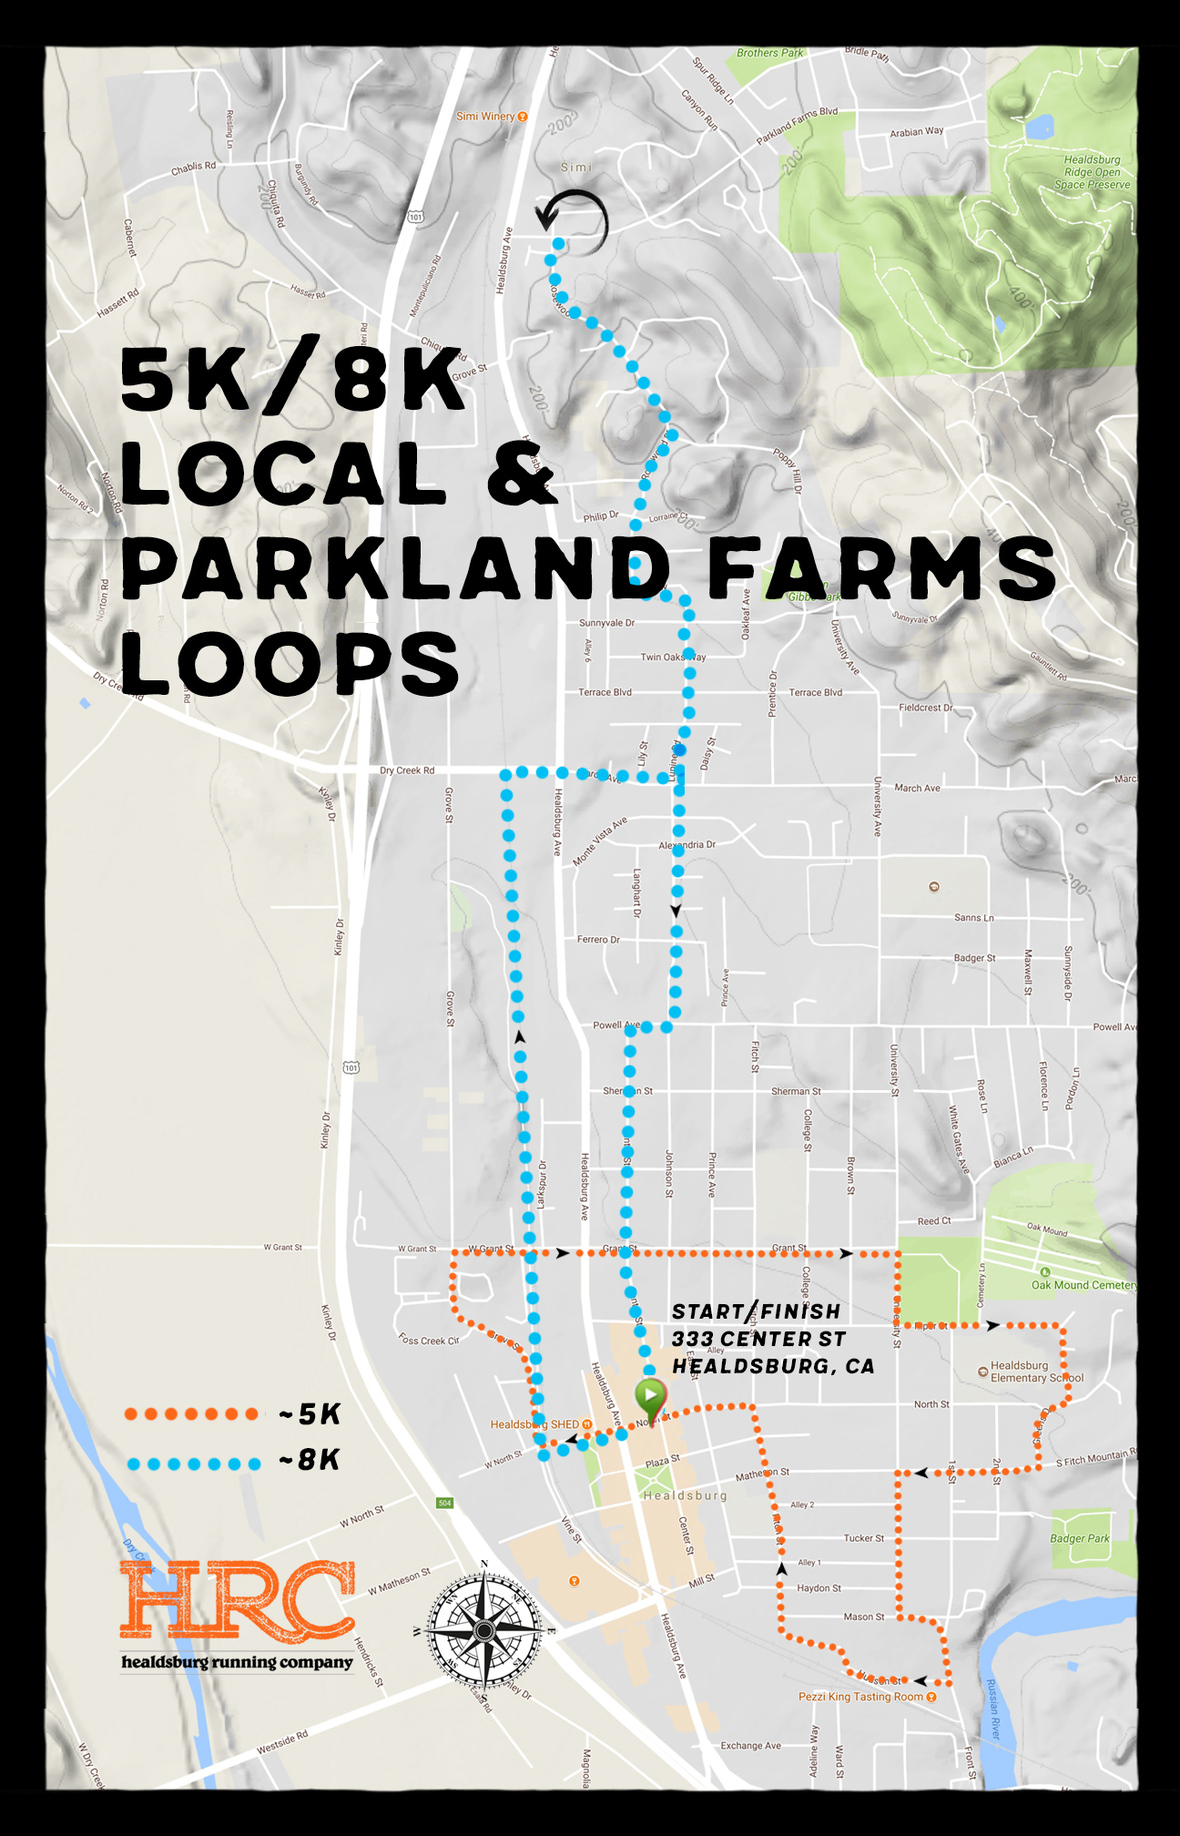 5K turkey trot with parkland farms